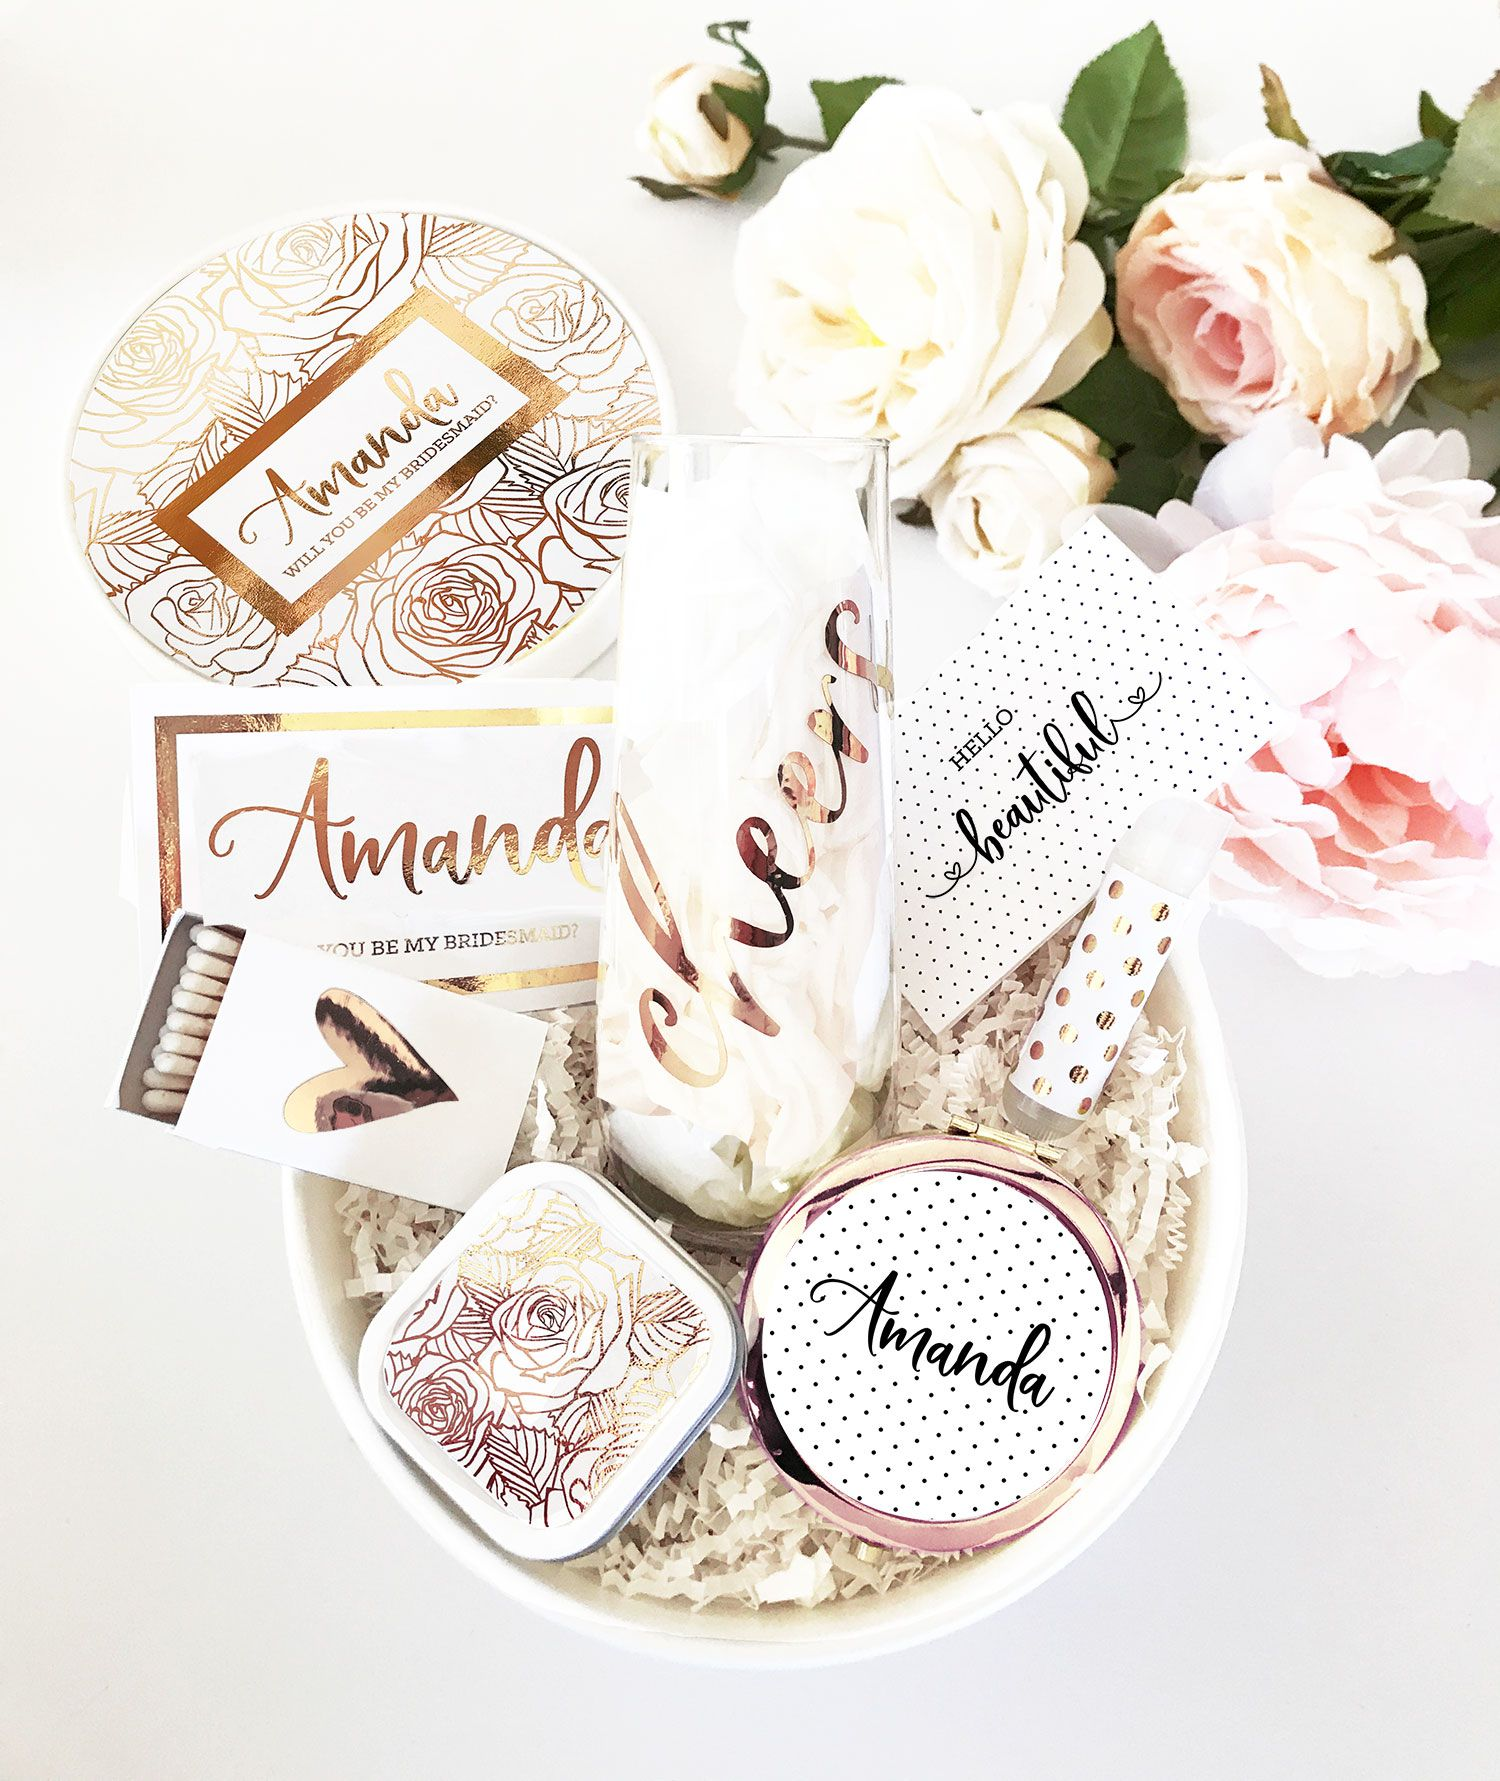 Bridesmaid Gift Box Set Bridesmaid Gift Boxes Bridesmaid Proposal Gifts Will You Be My Bridesmaid Gifts